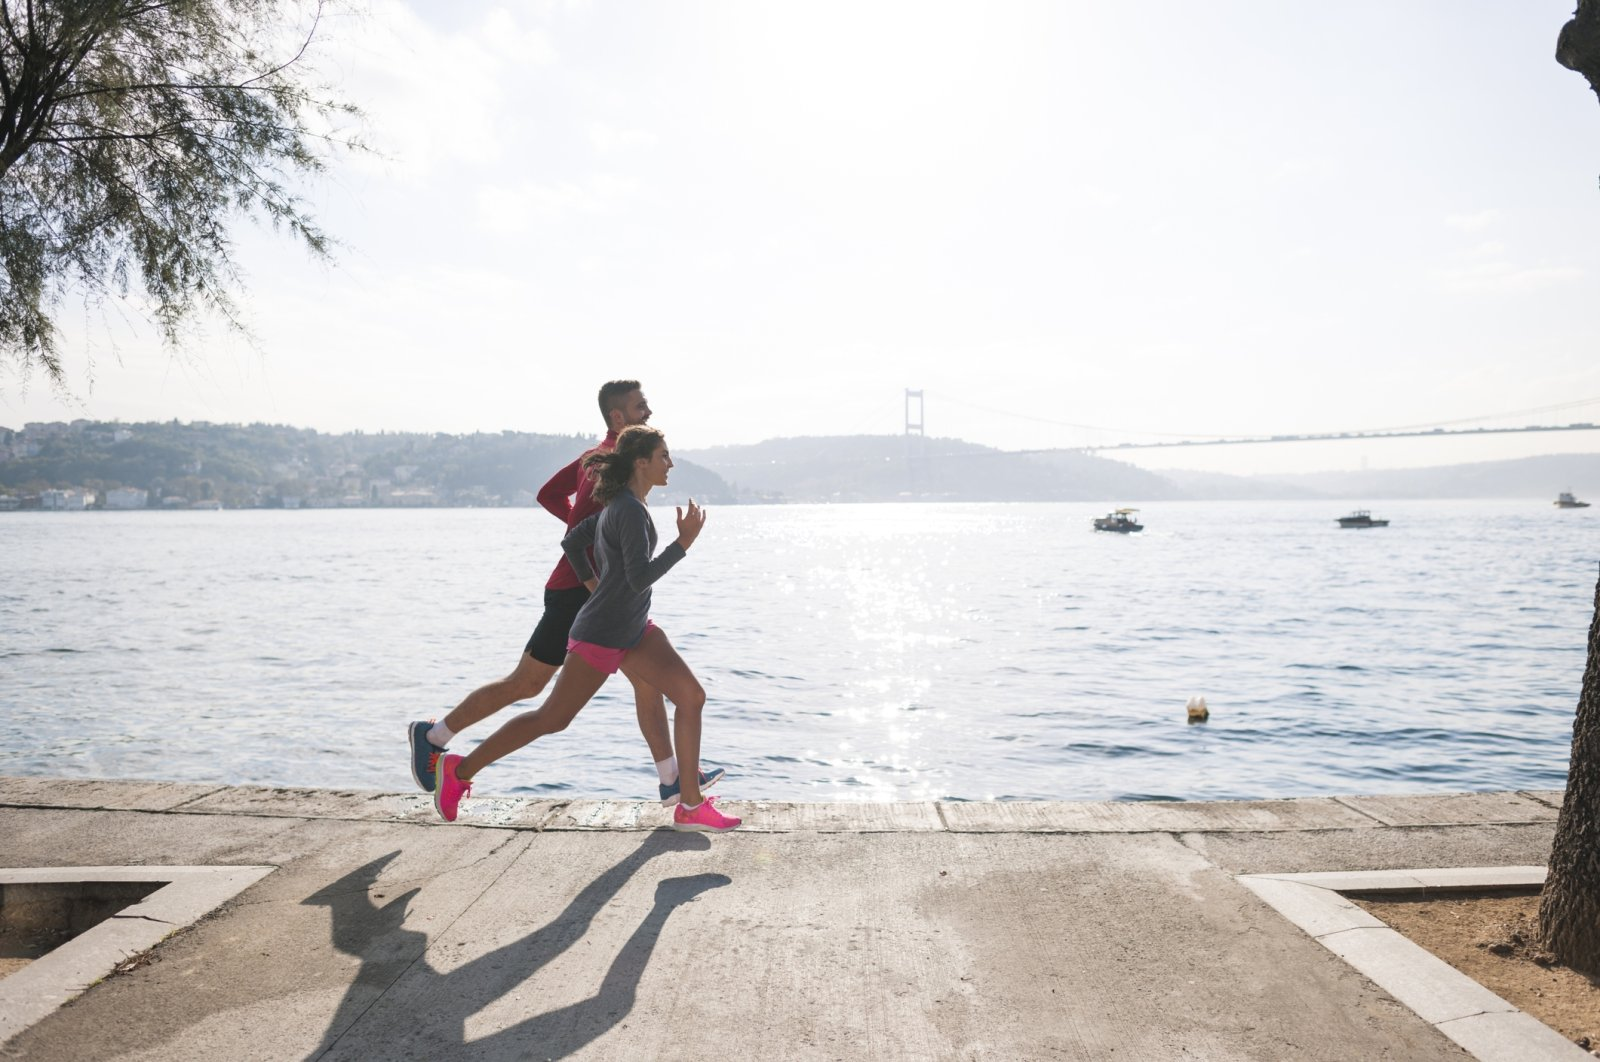 Running or doing sports outside is a good way to get moving and get some fresh air. (iStock Photo)